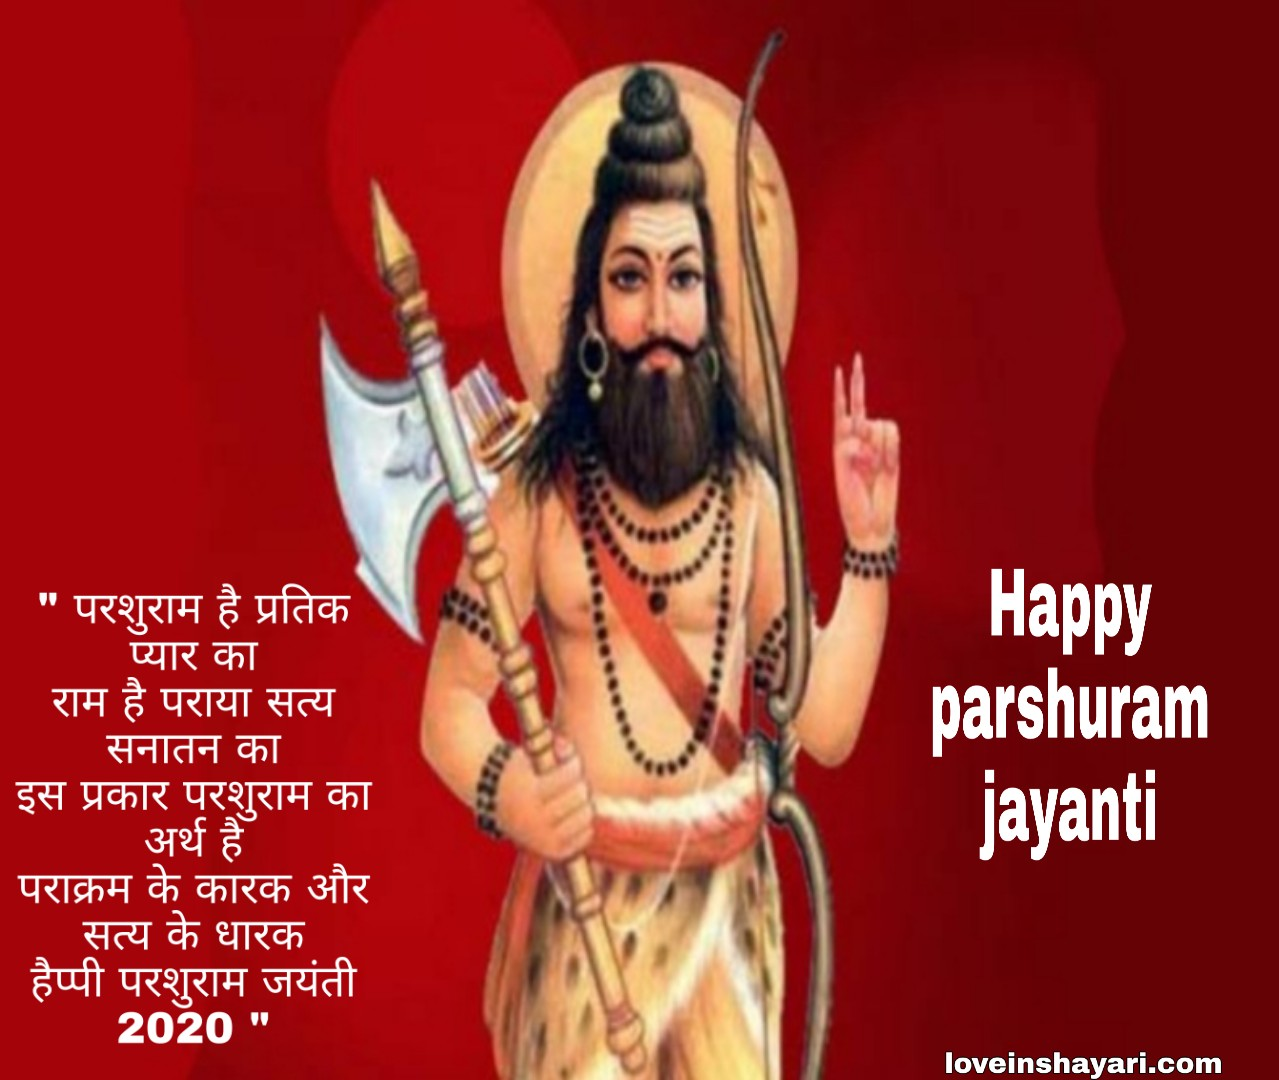 Photo of Parshuram jayanti status whatsapp status 2020